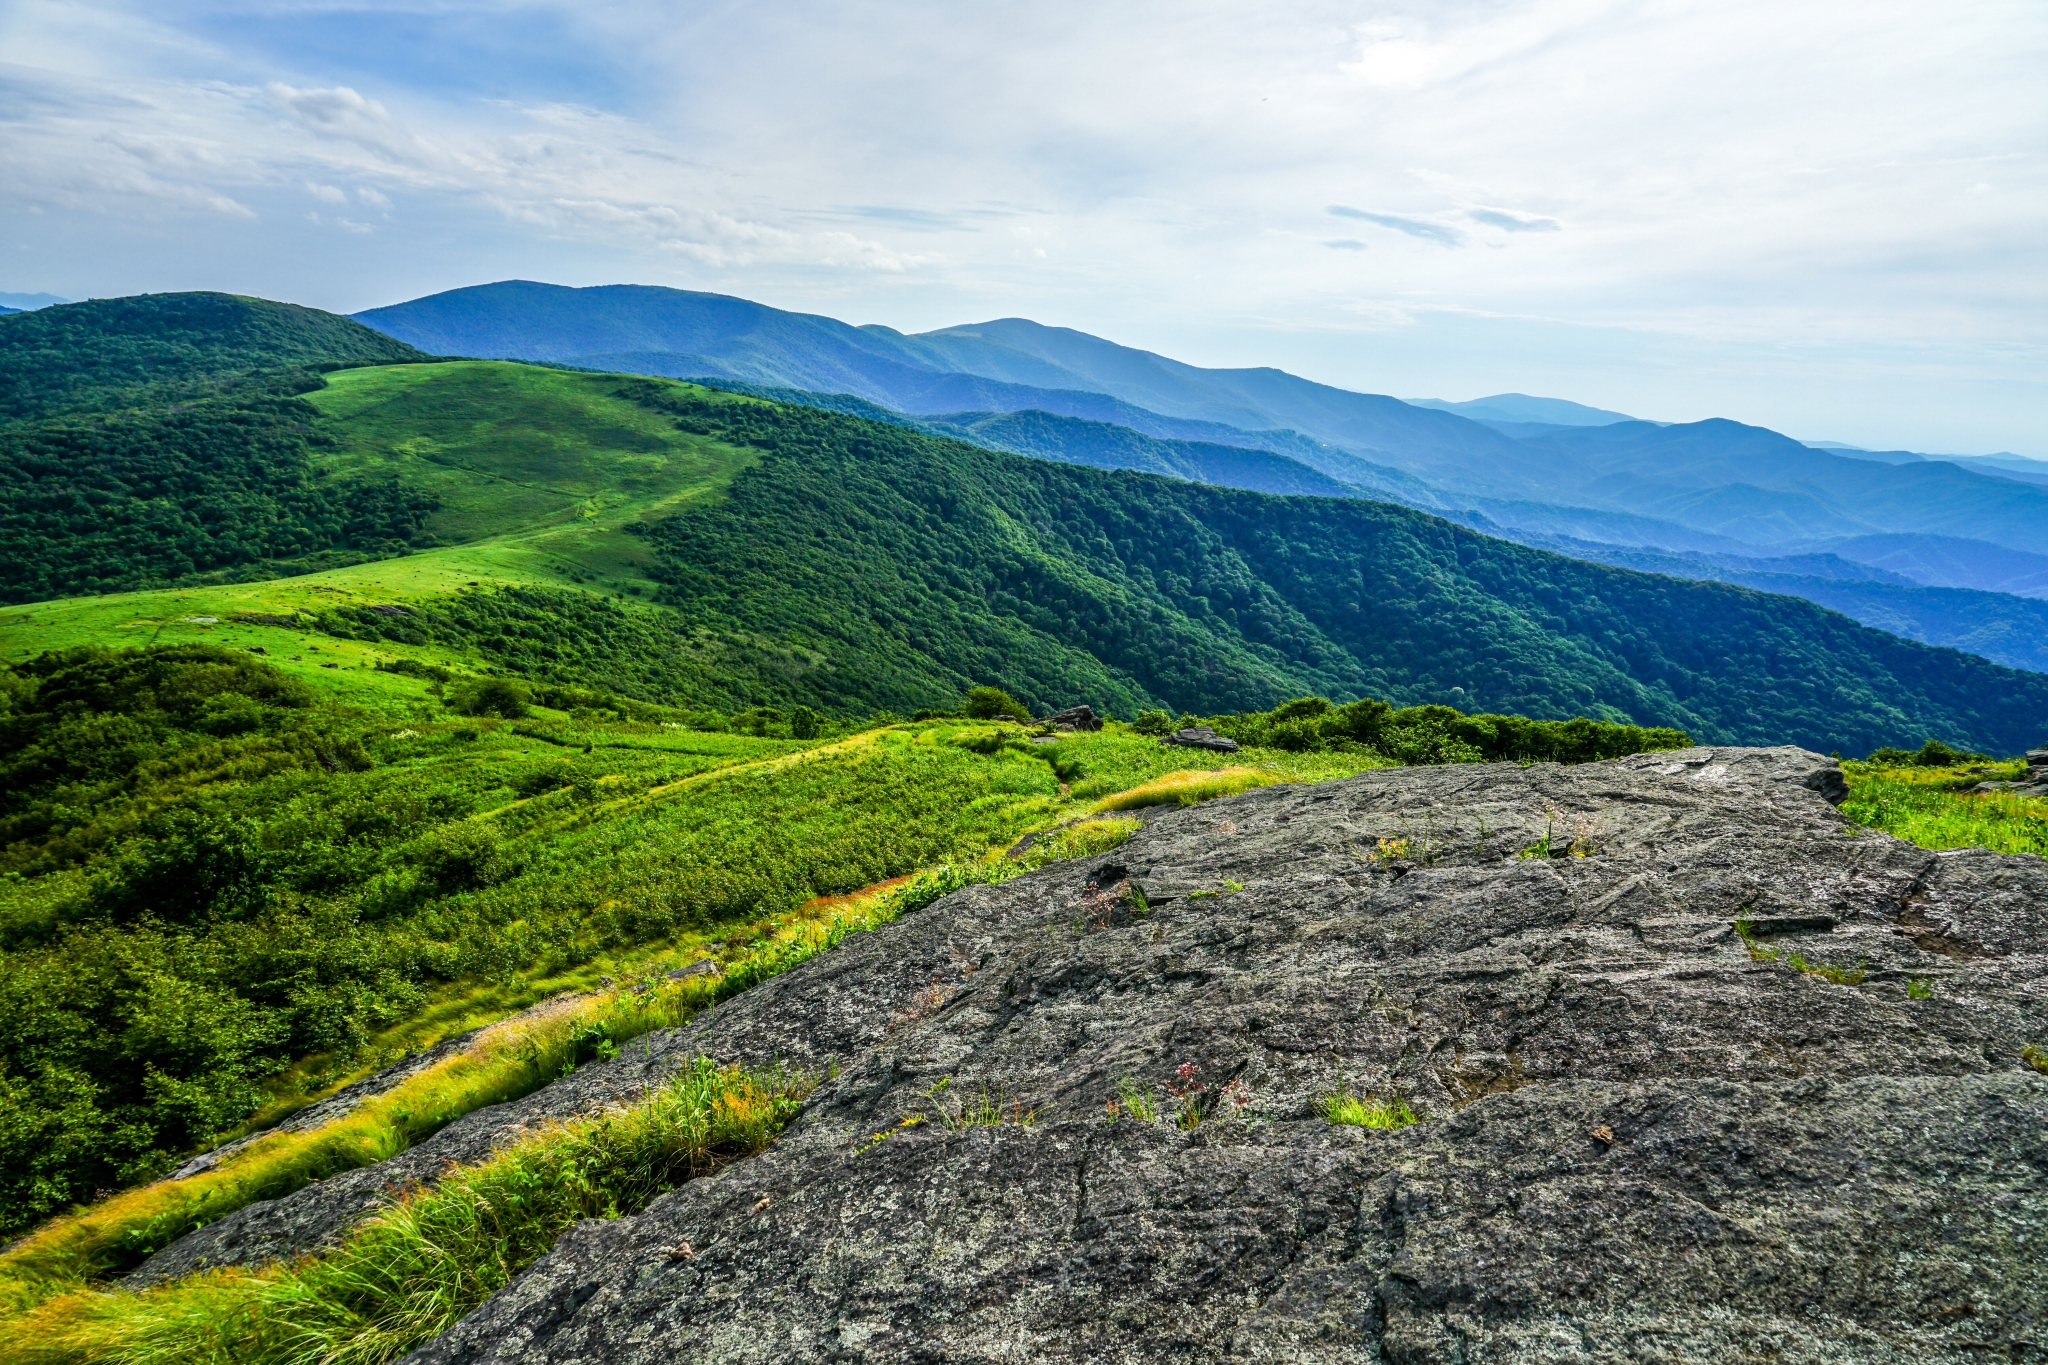 View of grassy balds and mountain ridges